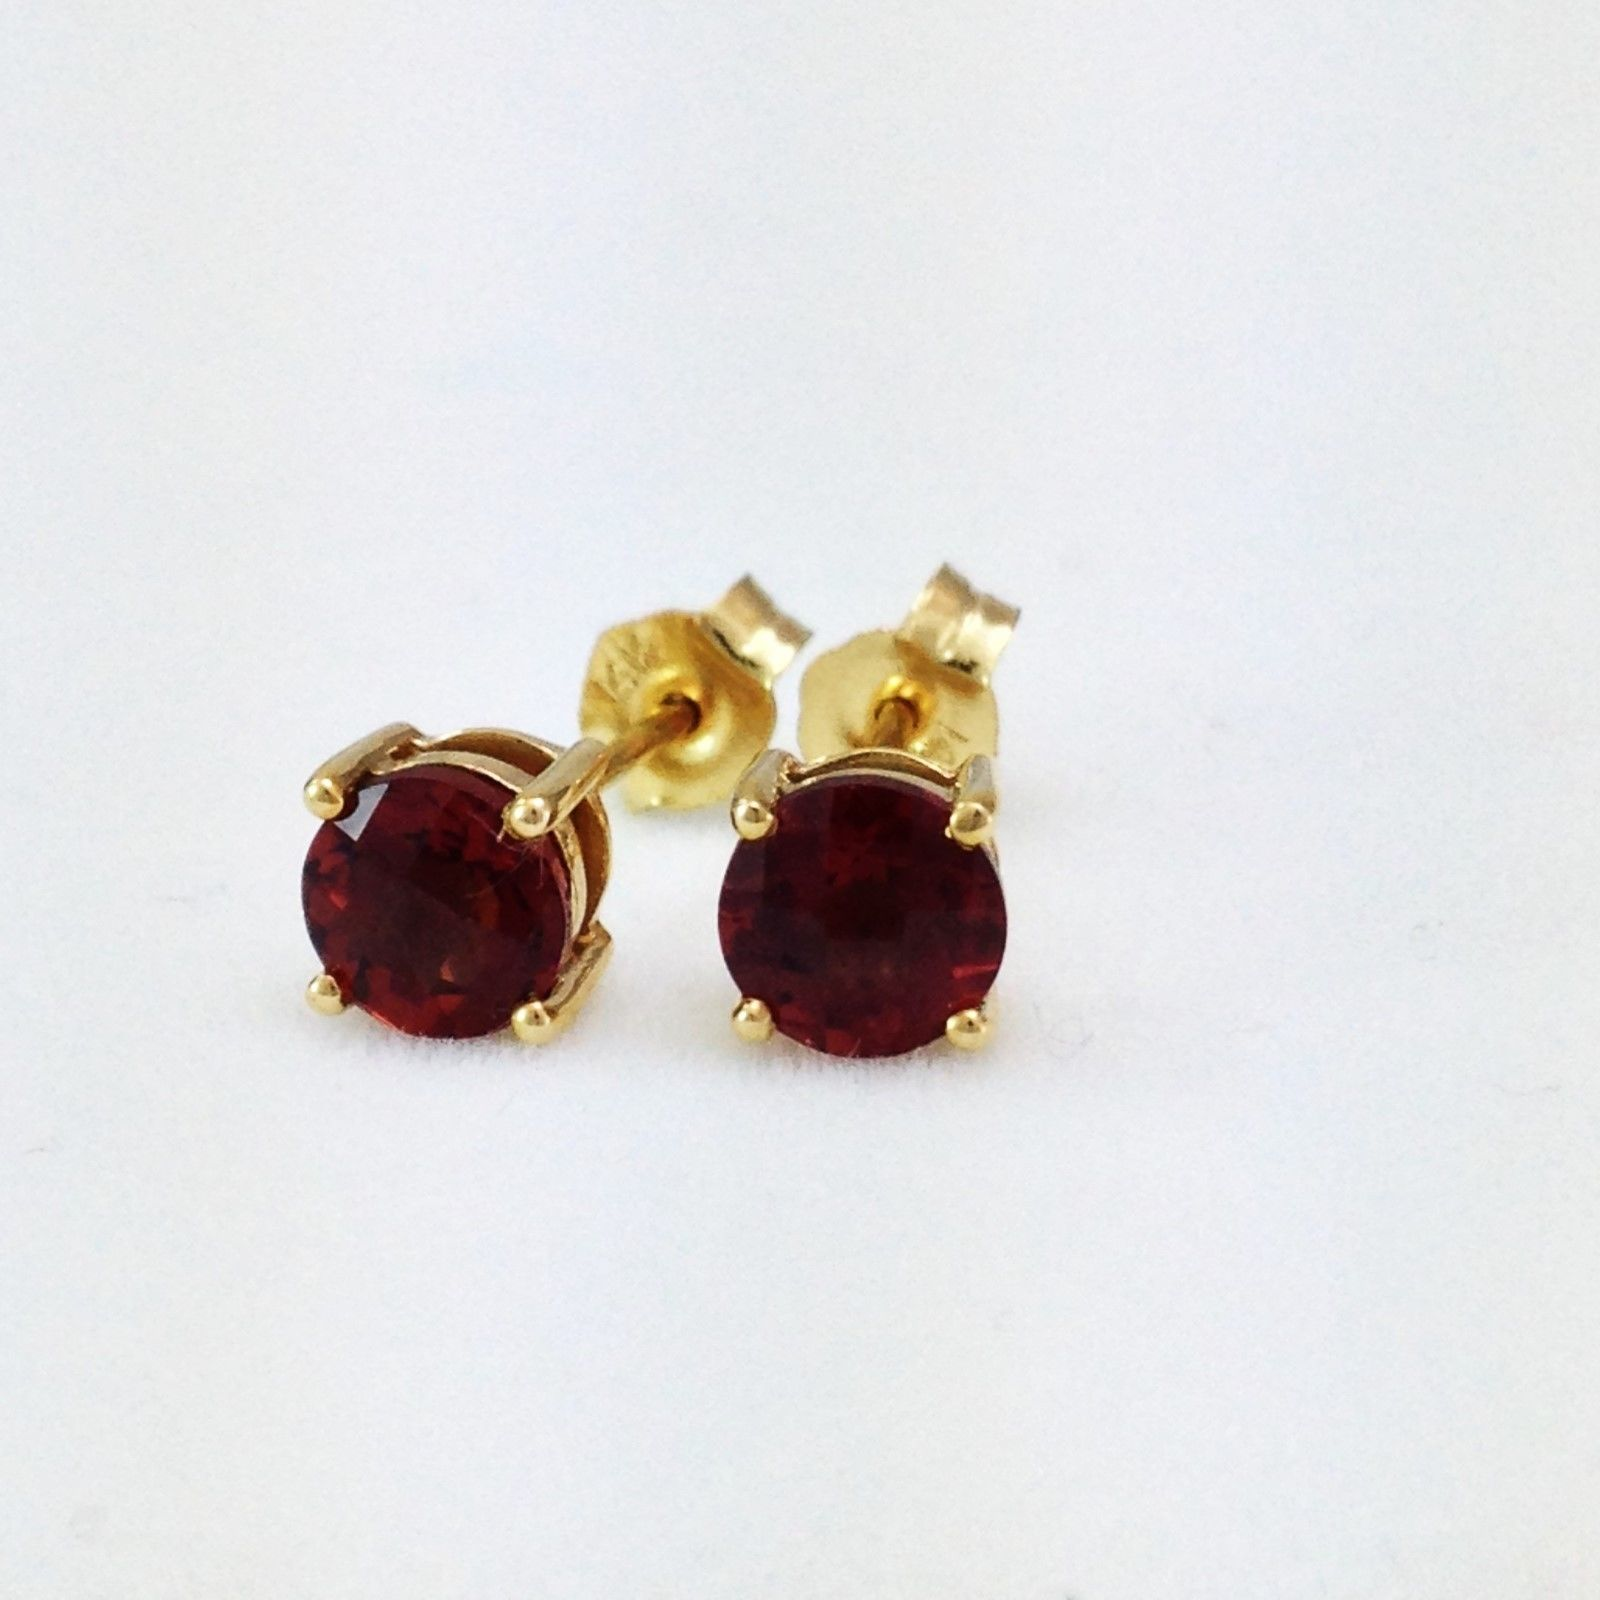 Genuine Garnet 1.3 cttw 5mm 14K yellow gold Earrings NWT $344